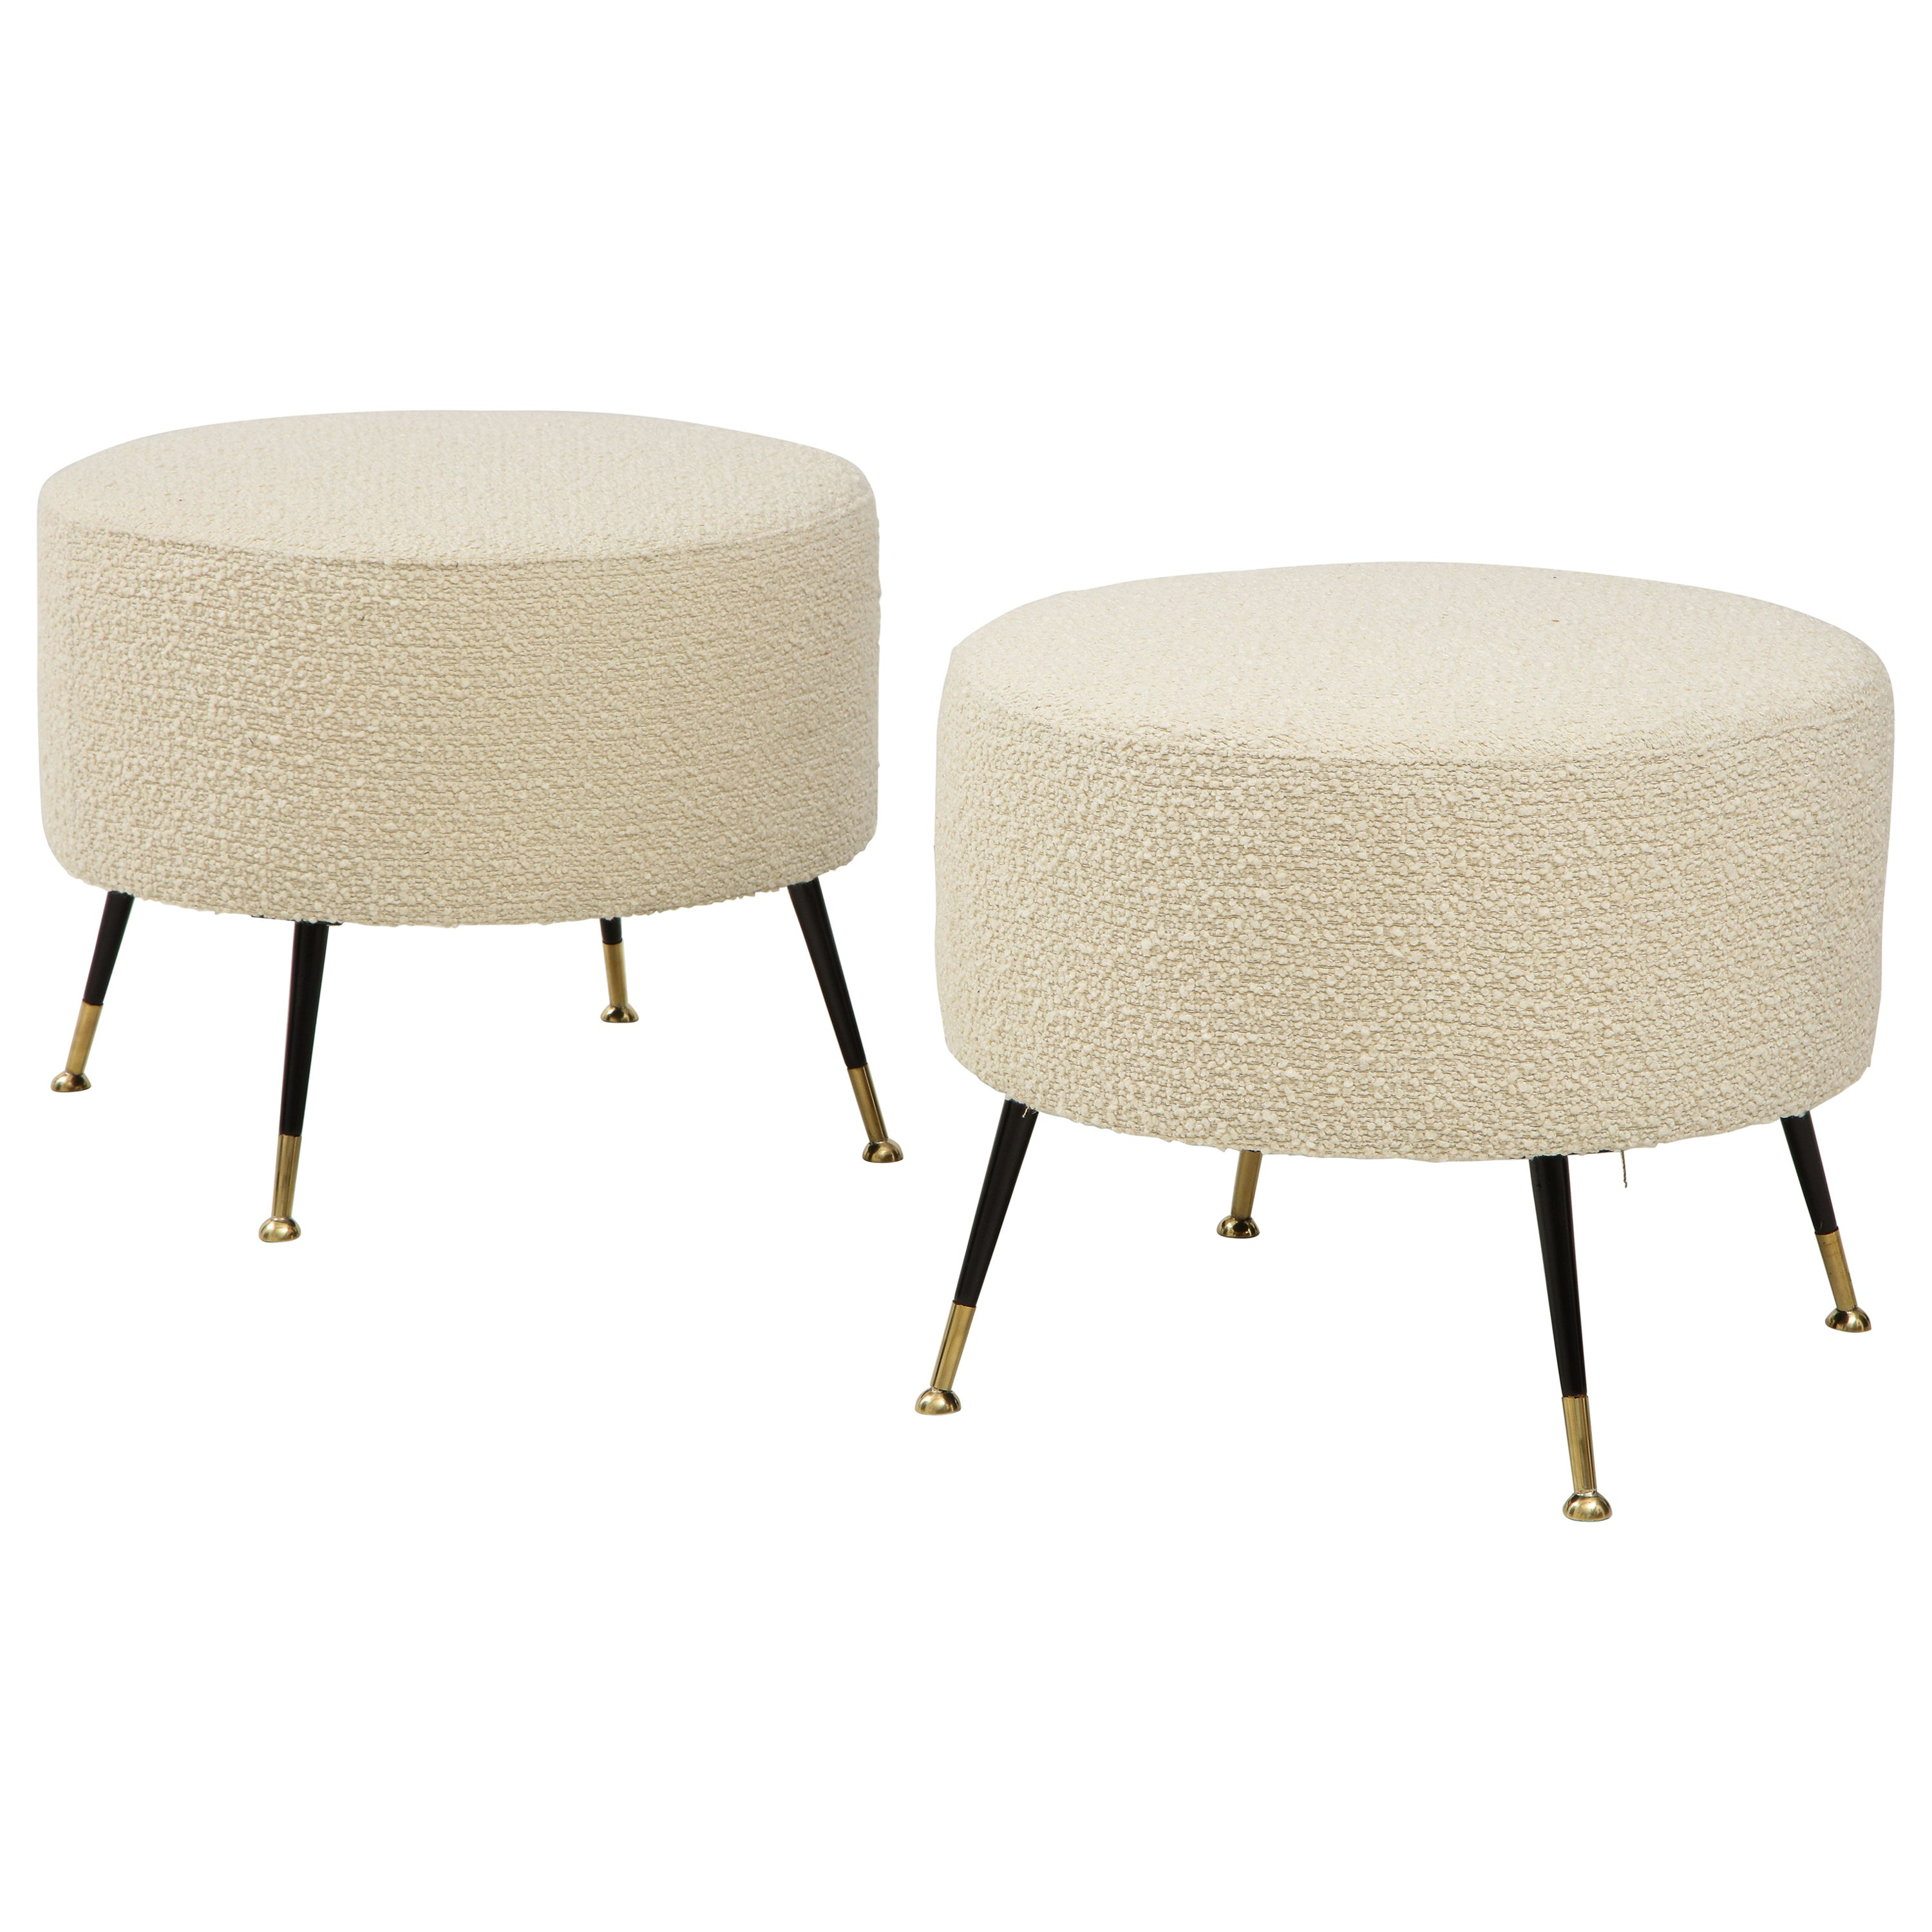 Pair of Round Stools or Poufs in Ivory Boucle Brass Legs, Italy, 2021